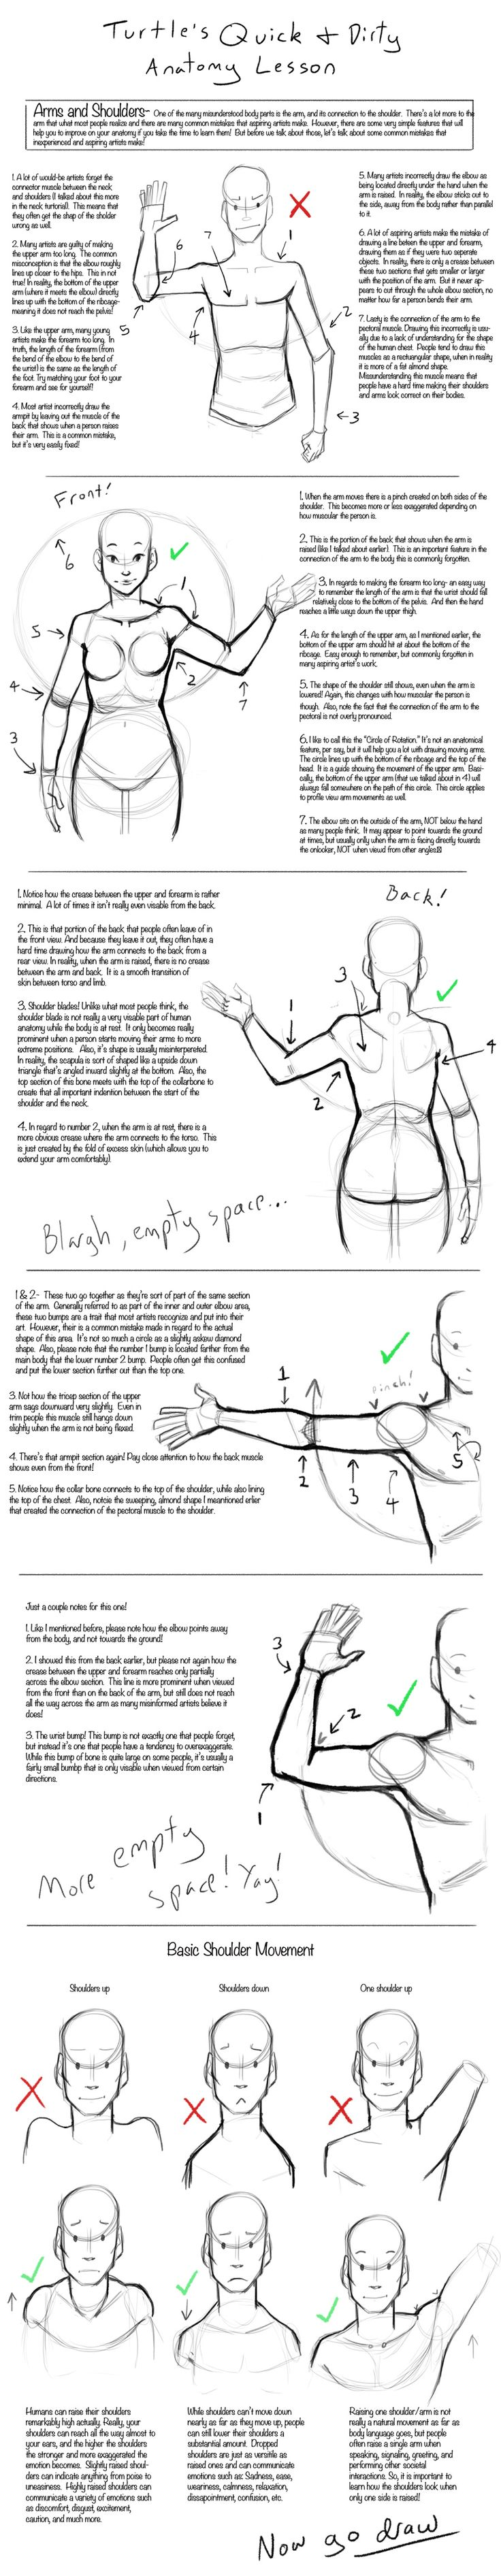 Q+D Anatomy Lessons- Arms and Shoulders by *TurtleShelltered